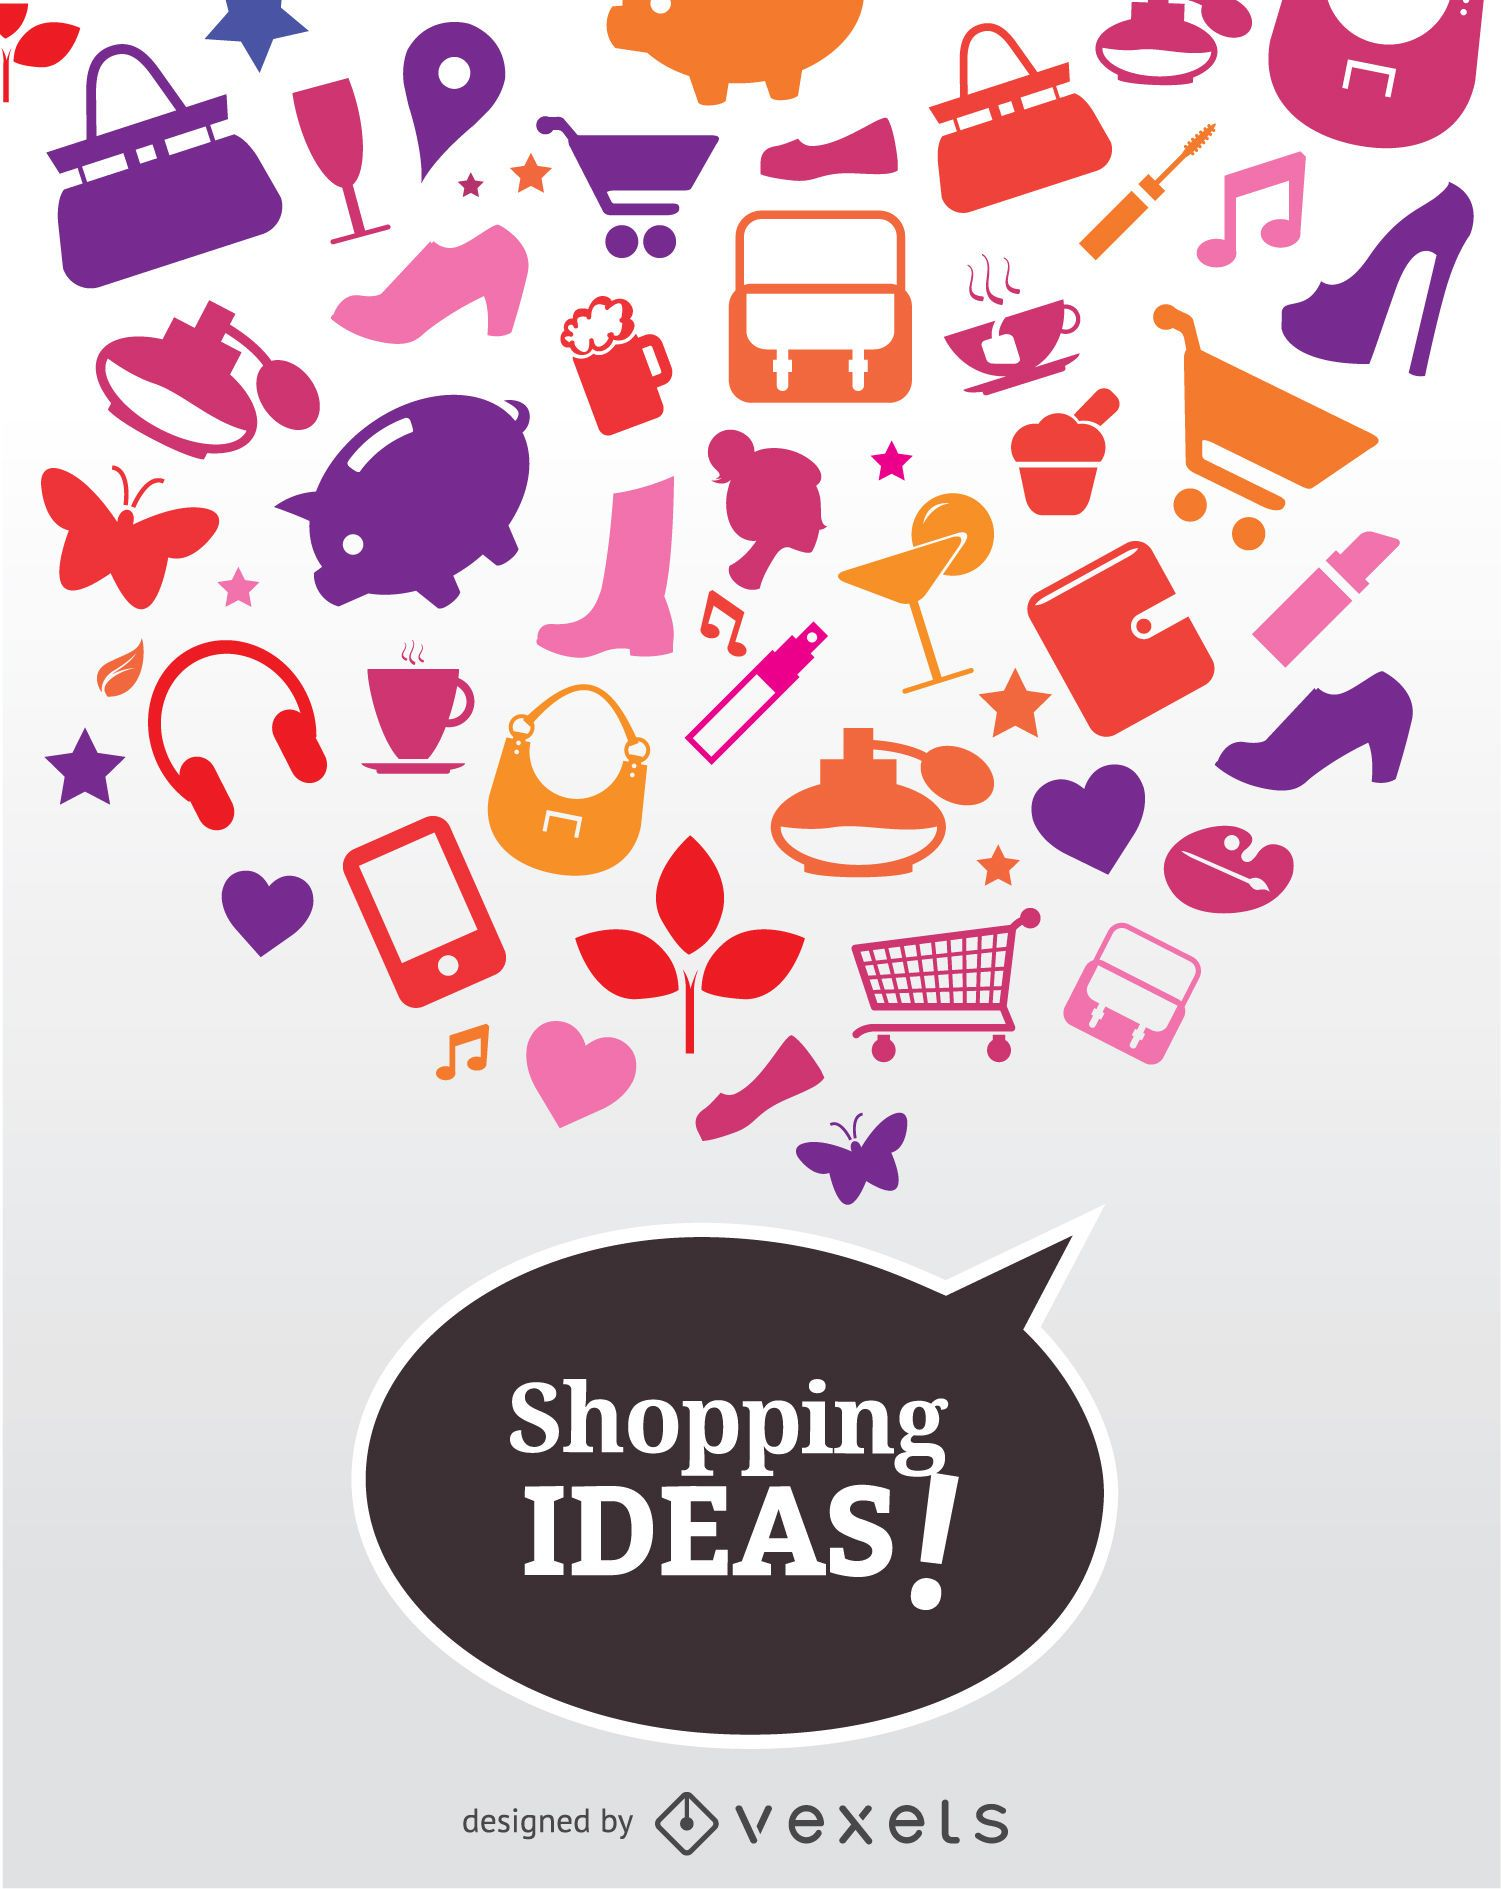 Shopping ideas icons poster